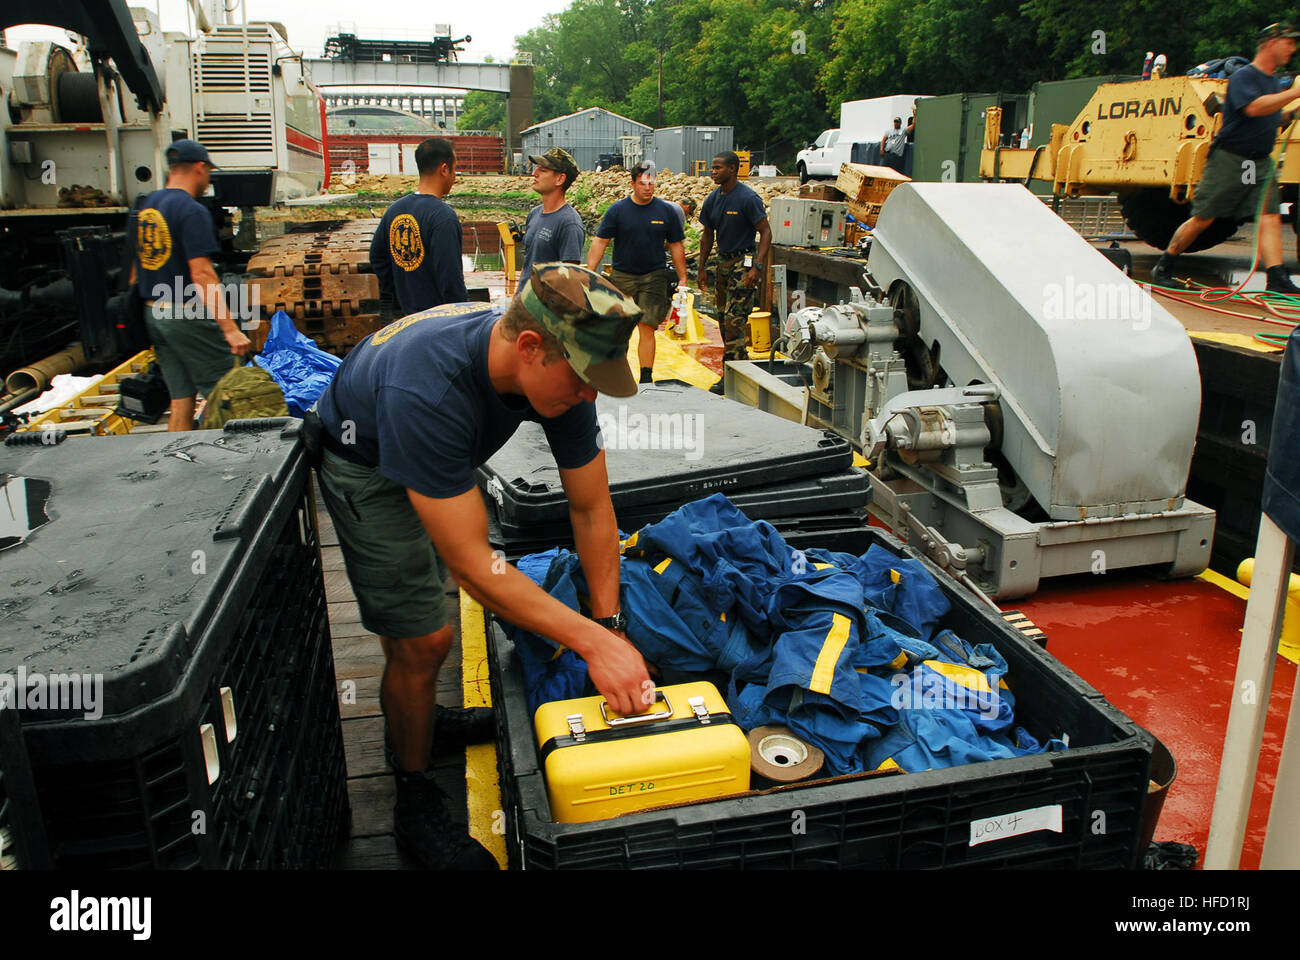 Navy divers from Mobile Diving and Salvage Unit (MDSU) 2 pack their gear in preparation for their return to Naval Amphibious Base Little Creek, Virginia Beach, Va., on Aug. 21. Divers from MDSU-2 have finished aiding federal, state and local officials with the search and recovery efforts at the I-35 bridge collapse site over the Mississippi River in Minneapolis. Salvage, Navy Divers Prepare to Return Home 55690 Stock Photo